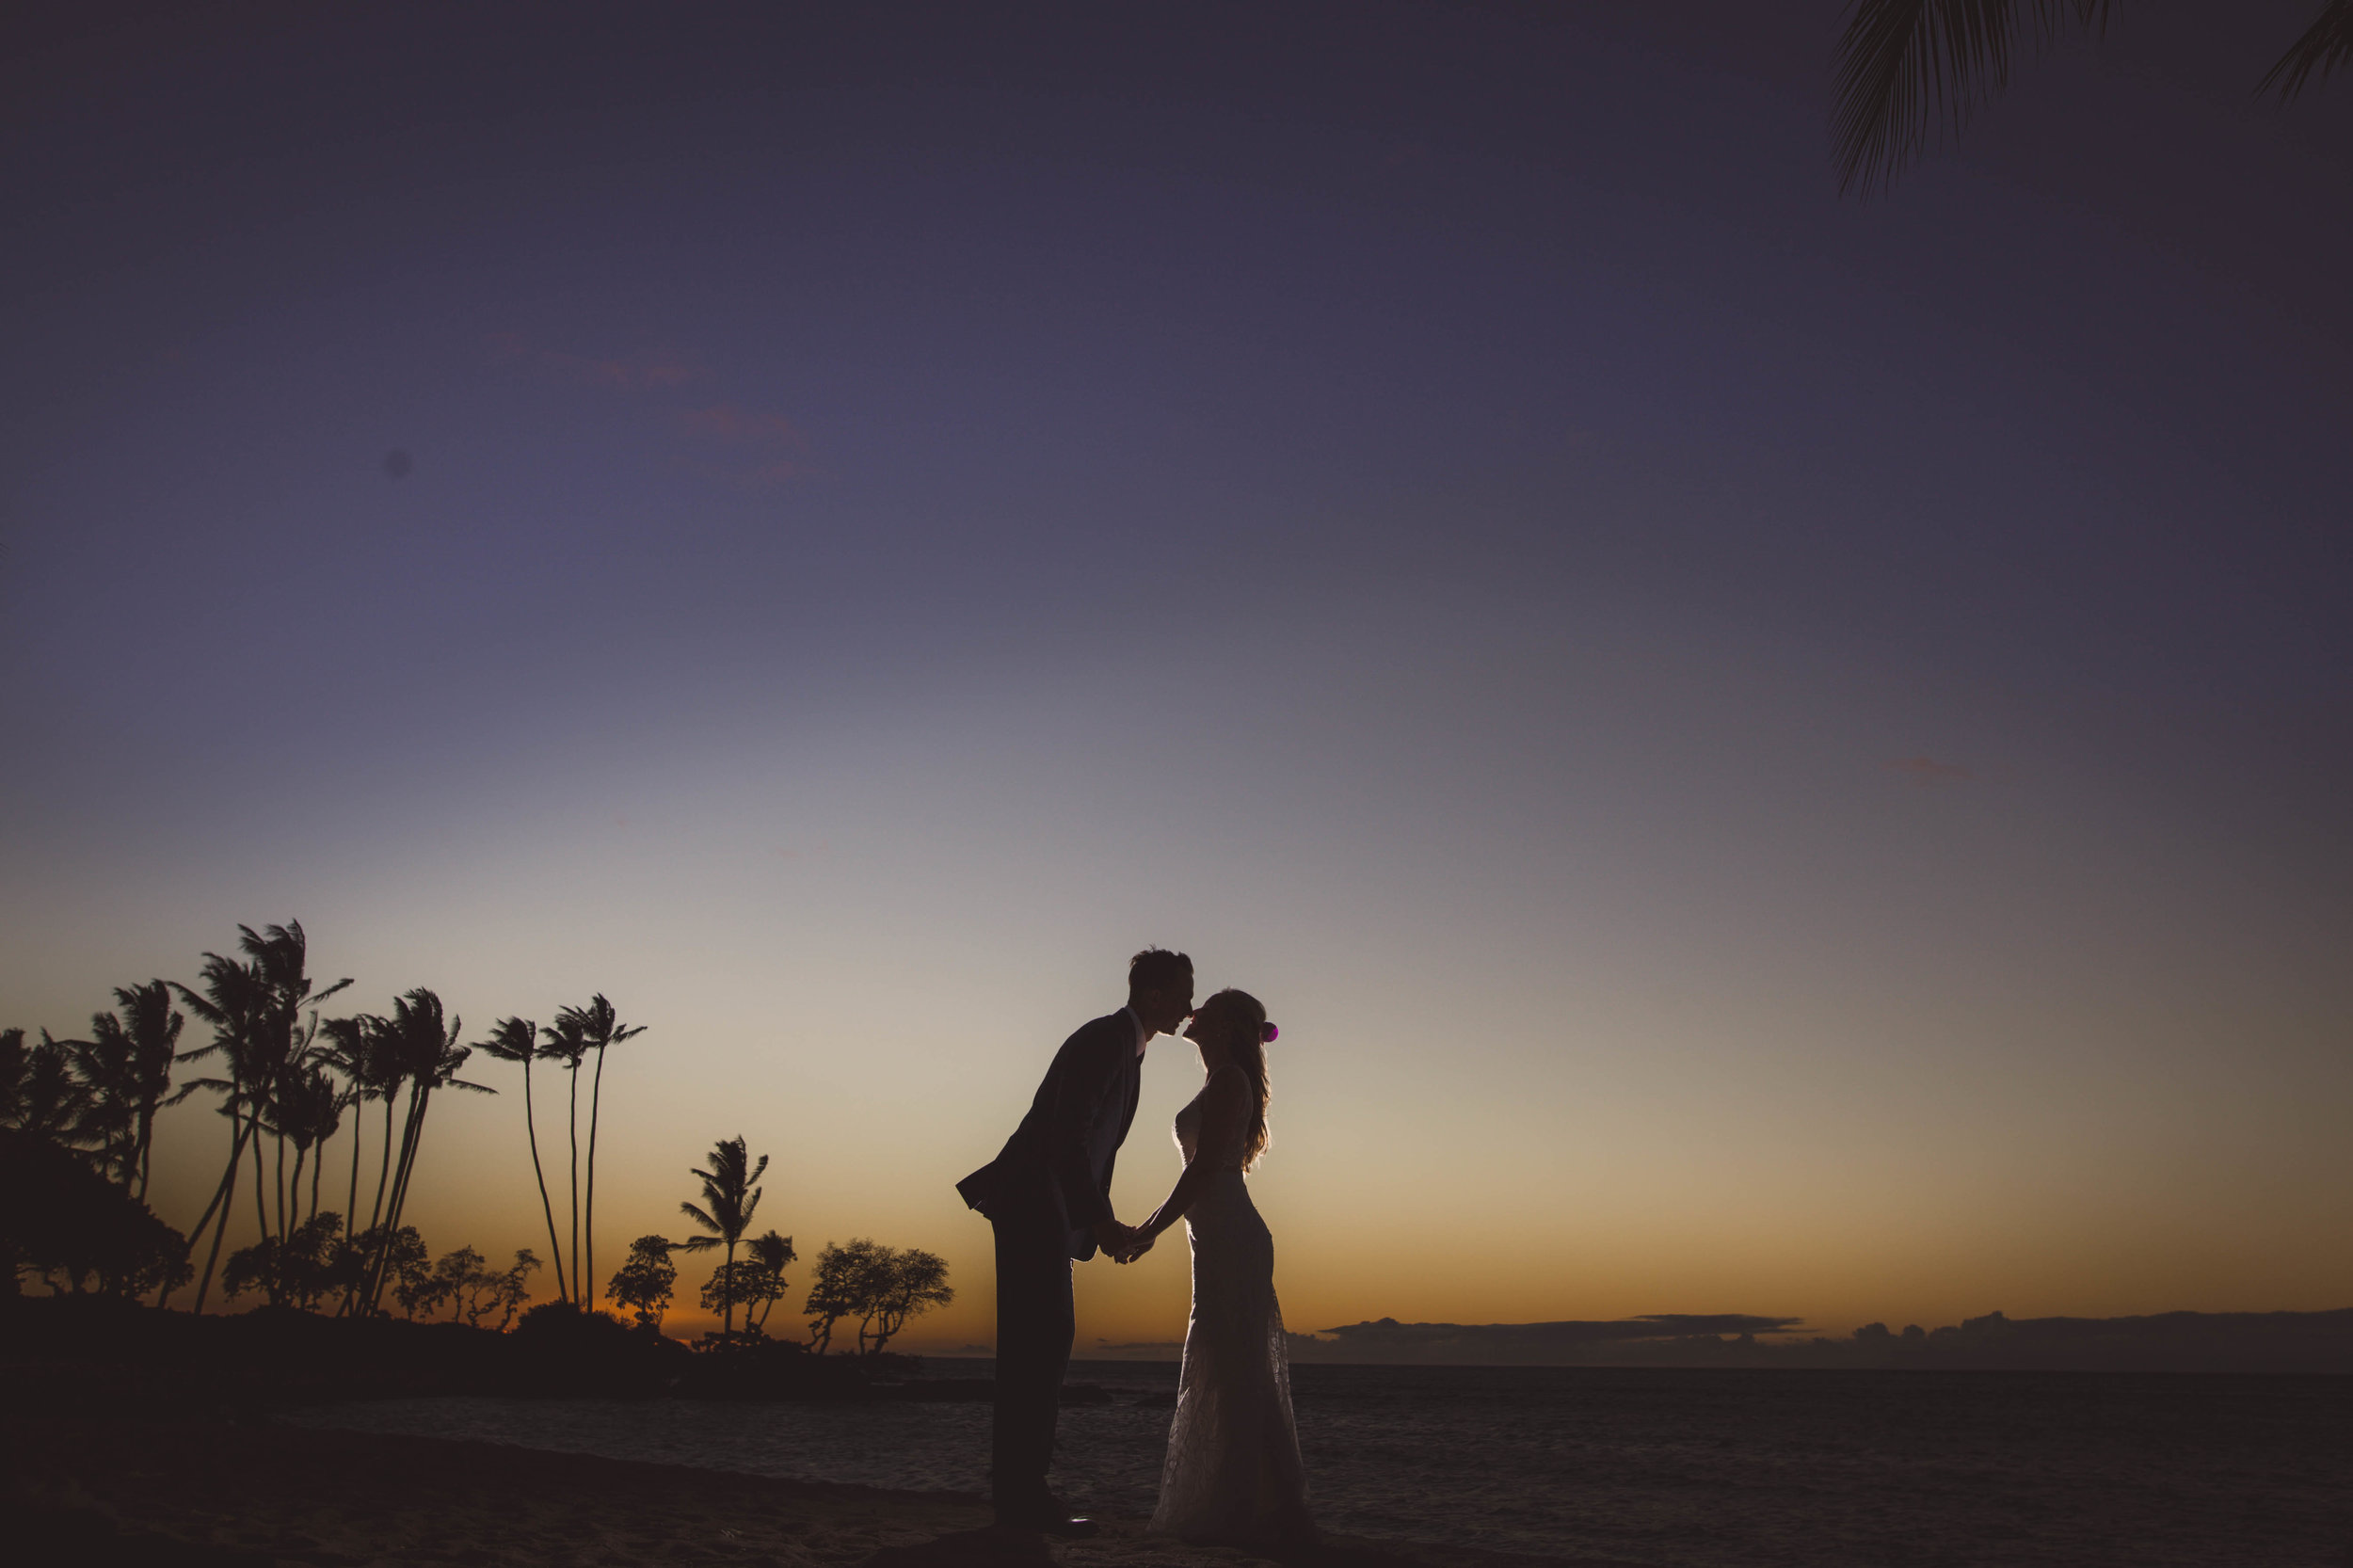 big island hawaii fairmont orchid beach wedding © kelilina photography 20170812185546-1.jpg